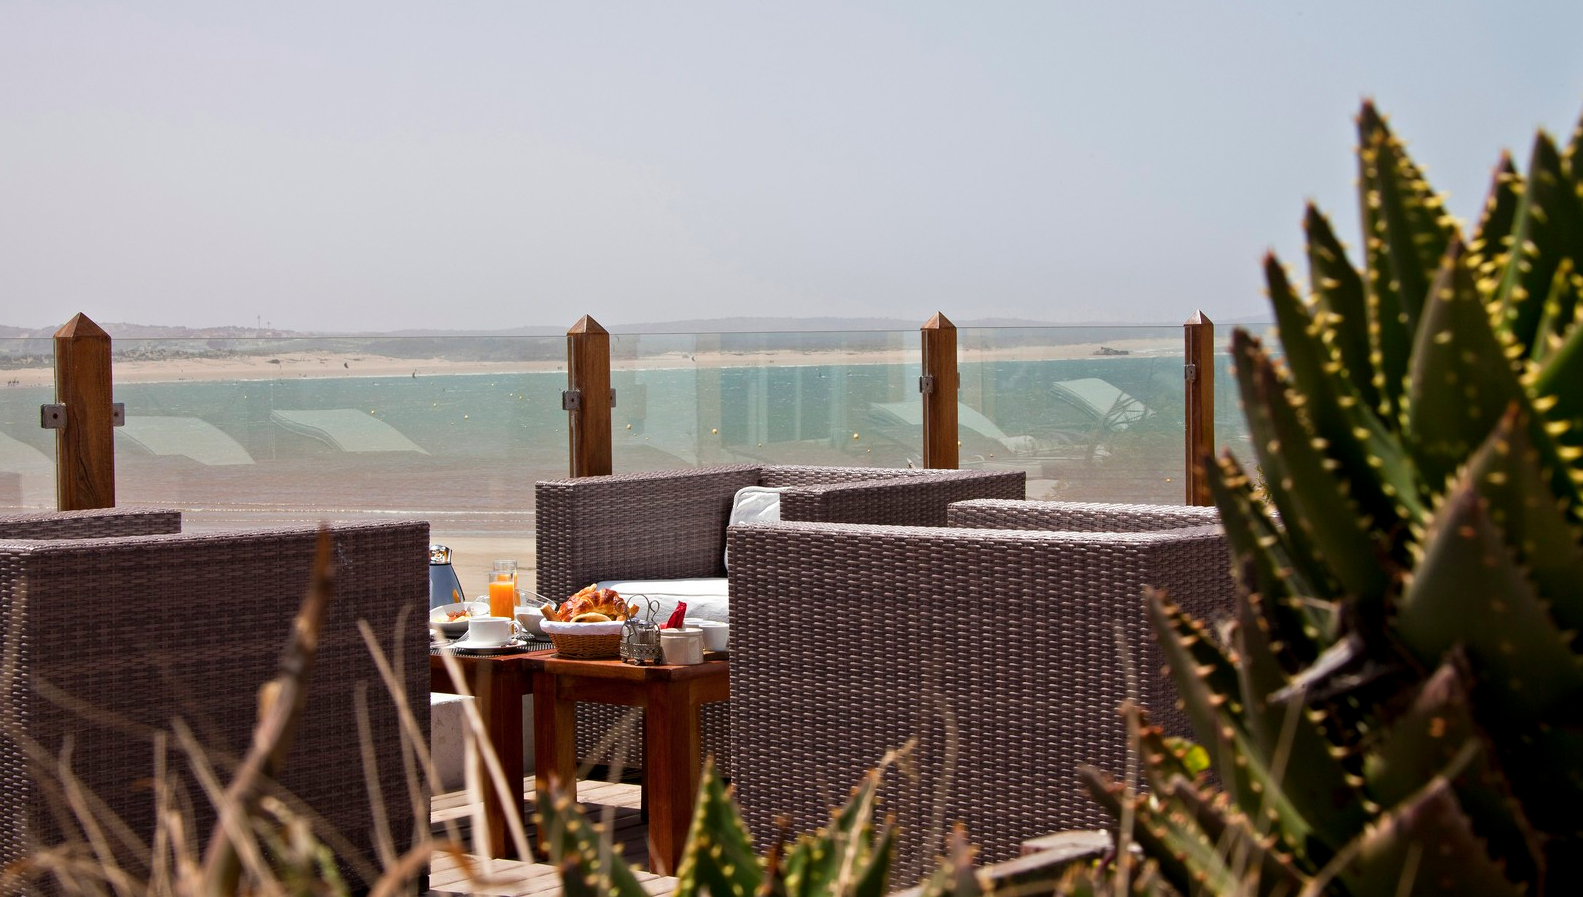 Breakfast meal placed on a low table between three outdoor armchairs overlooking the sea, Villa de L'Ô, Essaouira, Morocco